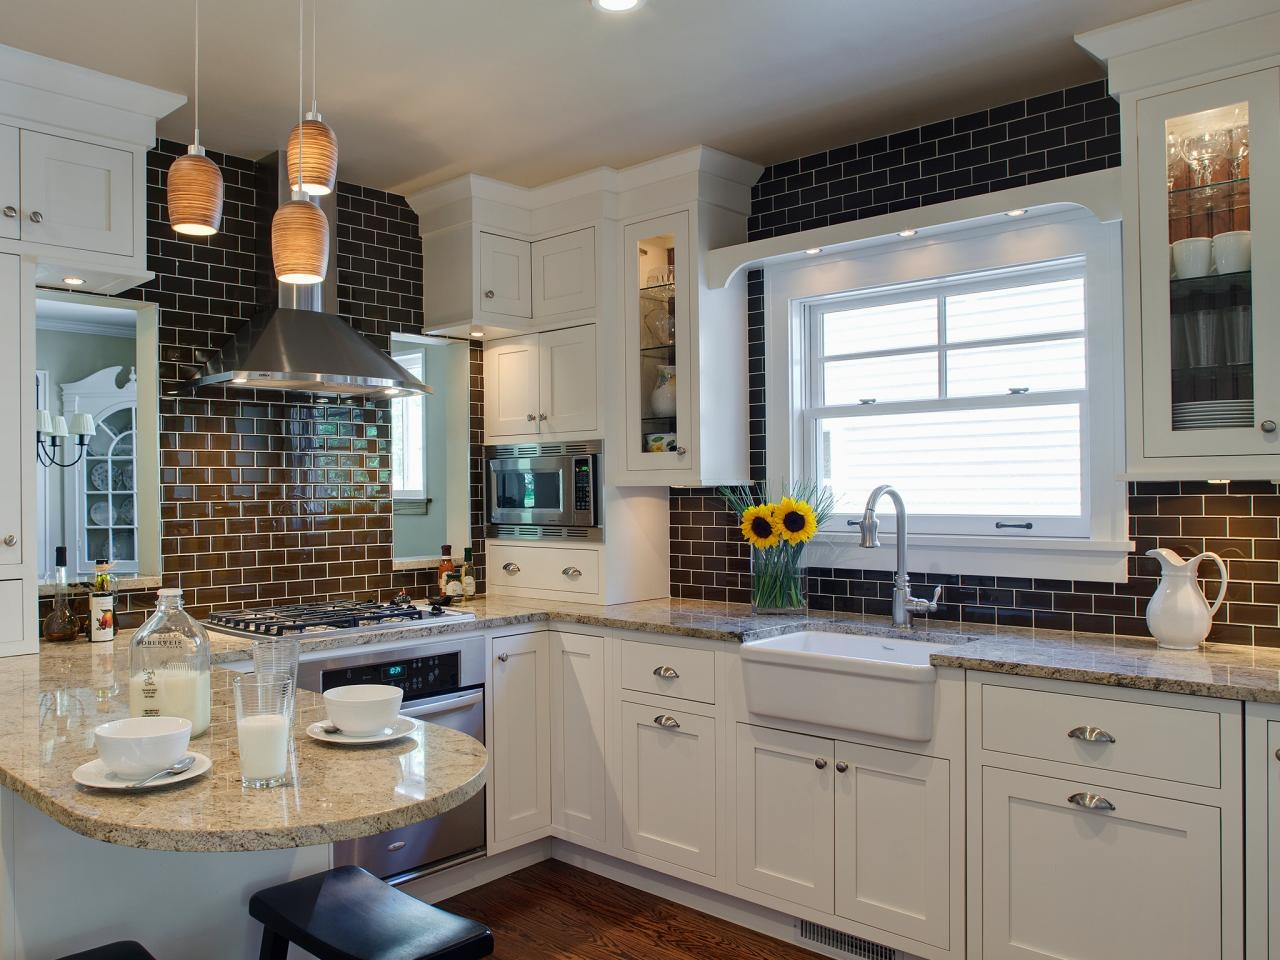 Stunning kitchen backsplash ideas